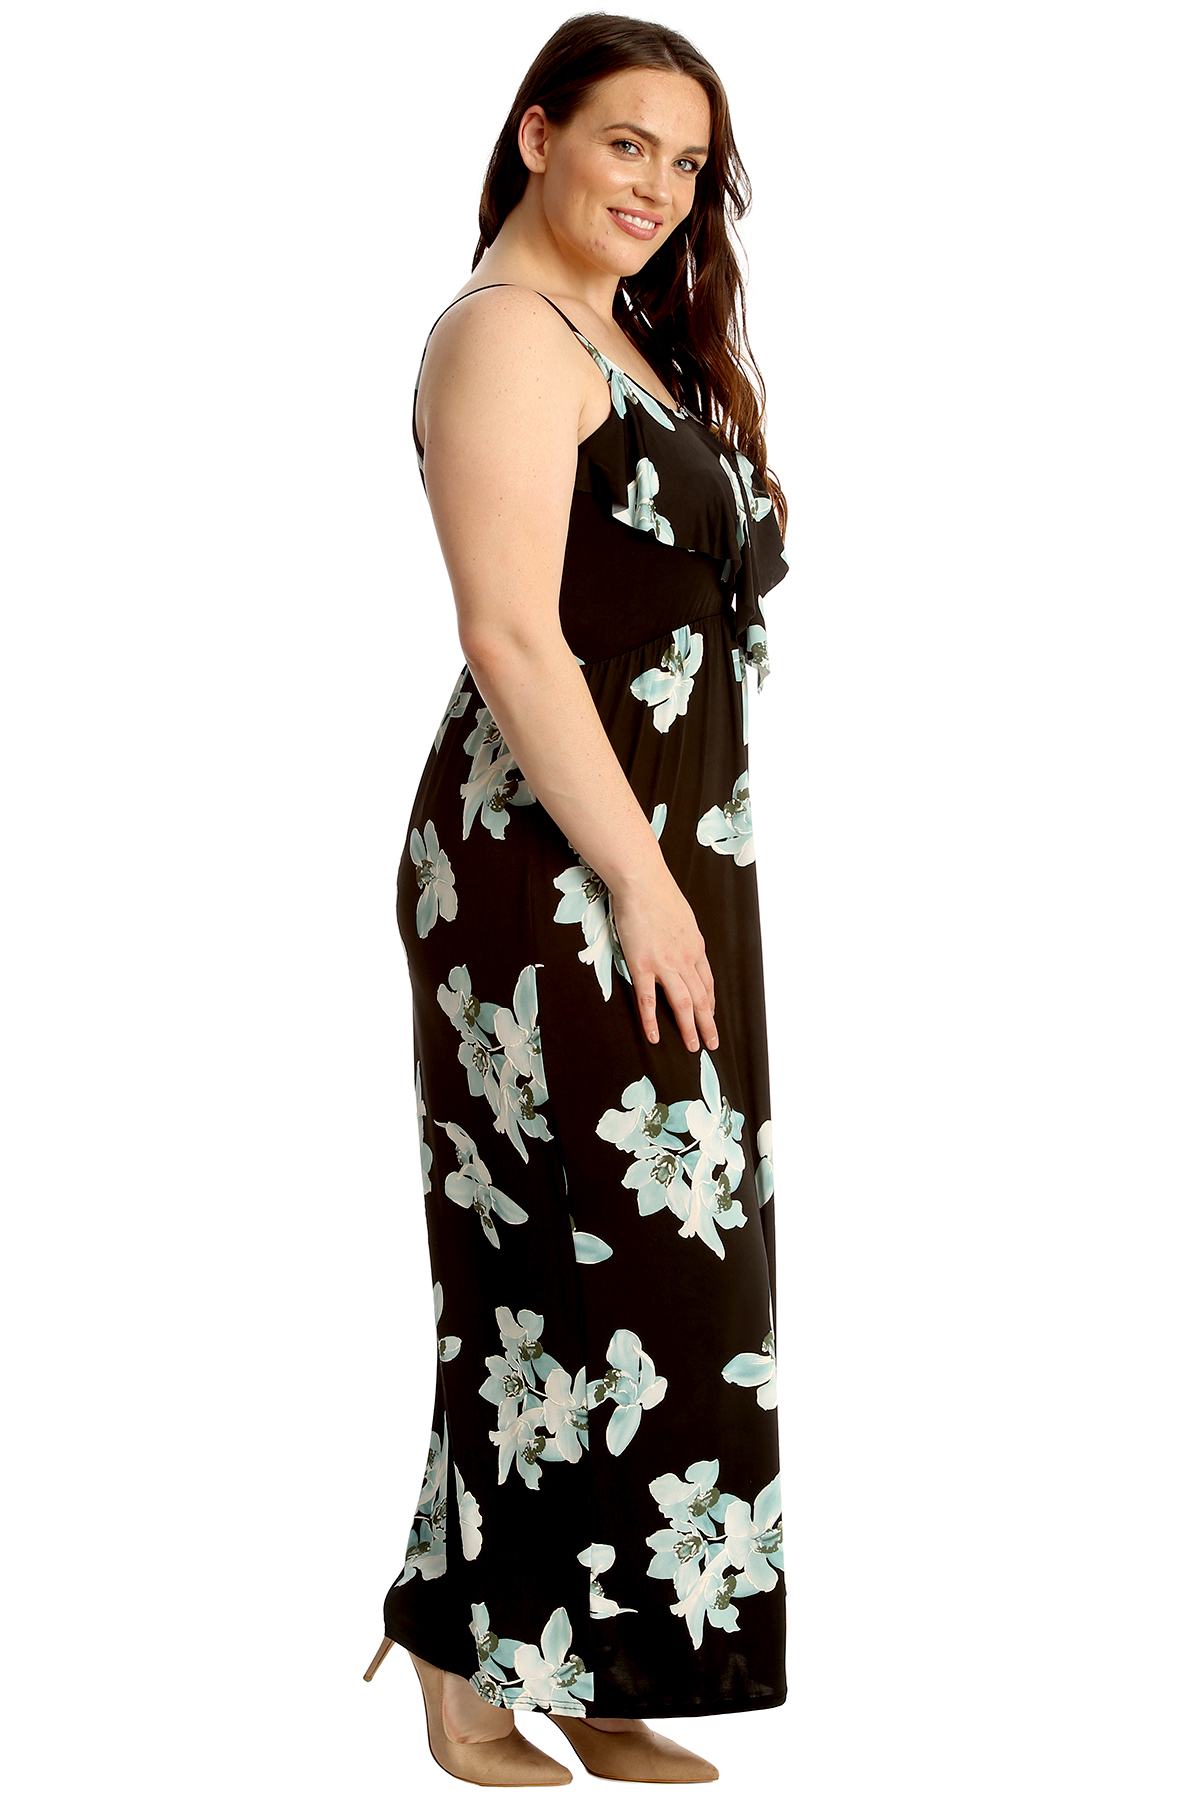 New Womens Plus Size Maxi Dress Ladies Floral Lily Print Frill Top Sleeveless